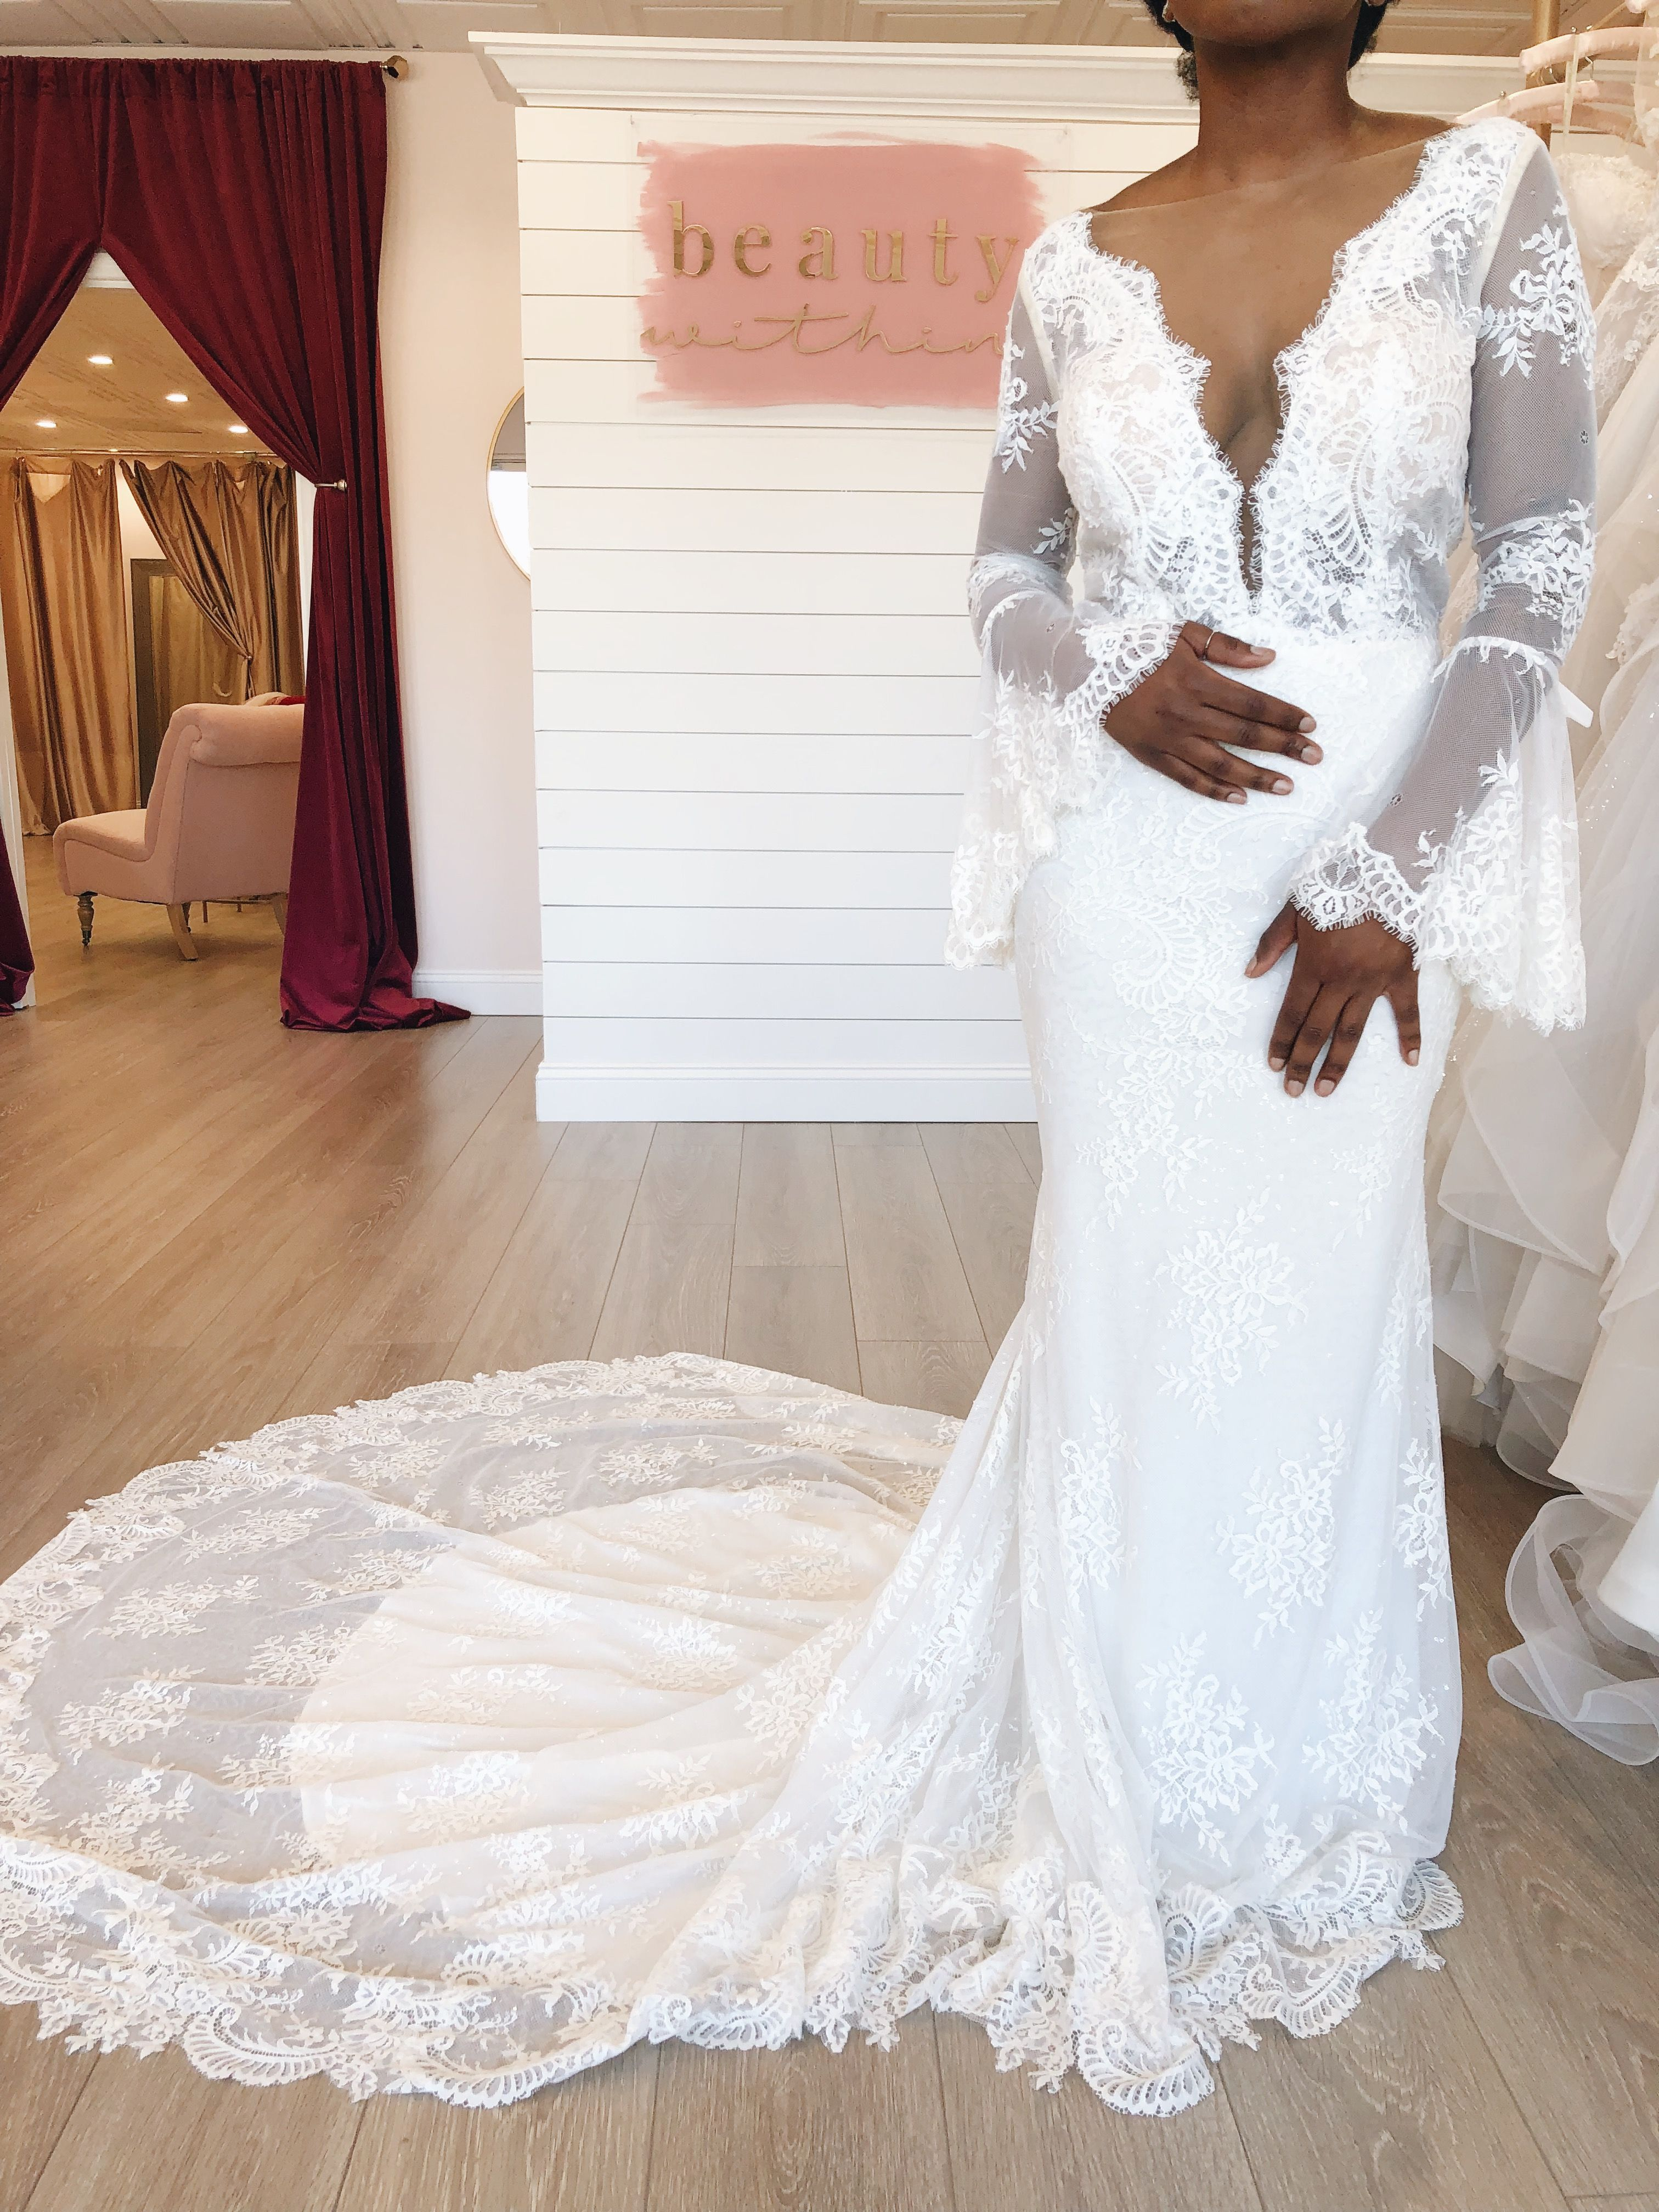 Yes Girl This Bell Sleeved Lace Wedding Dress Is Perfect For Boho And Vintage Long Sleeve Wedding Dress Backless Short Wedding Dress Backless Wedding Dress [ 4032 x 3024 Pixel ]